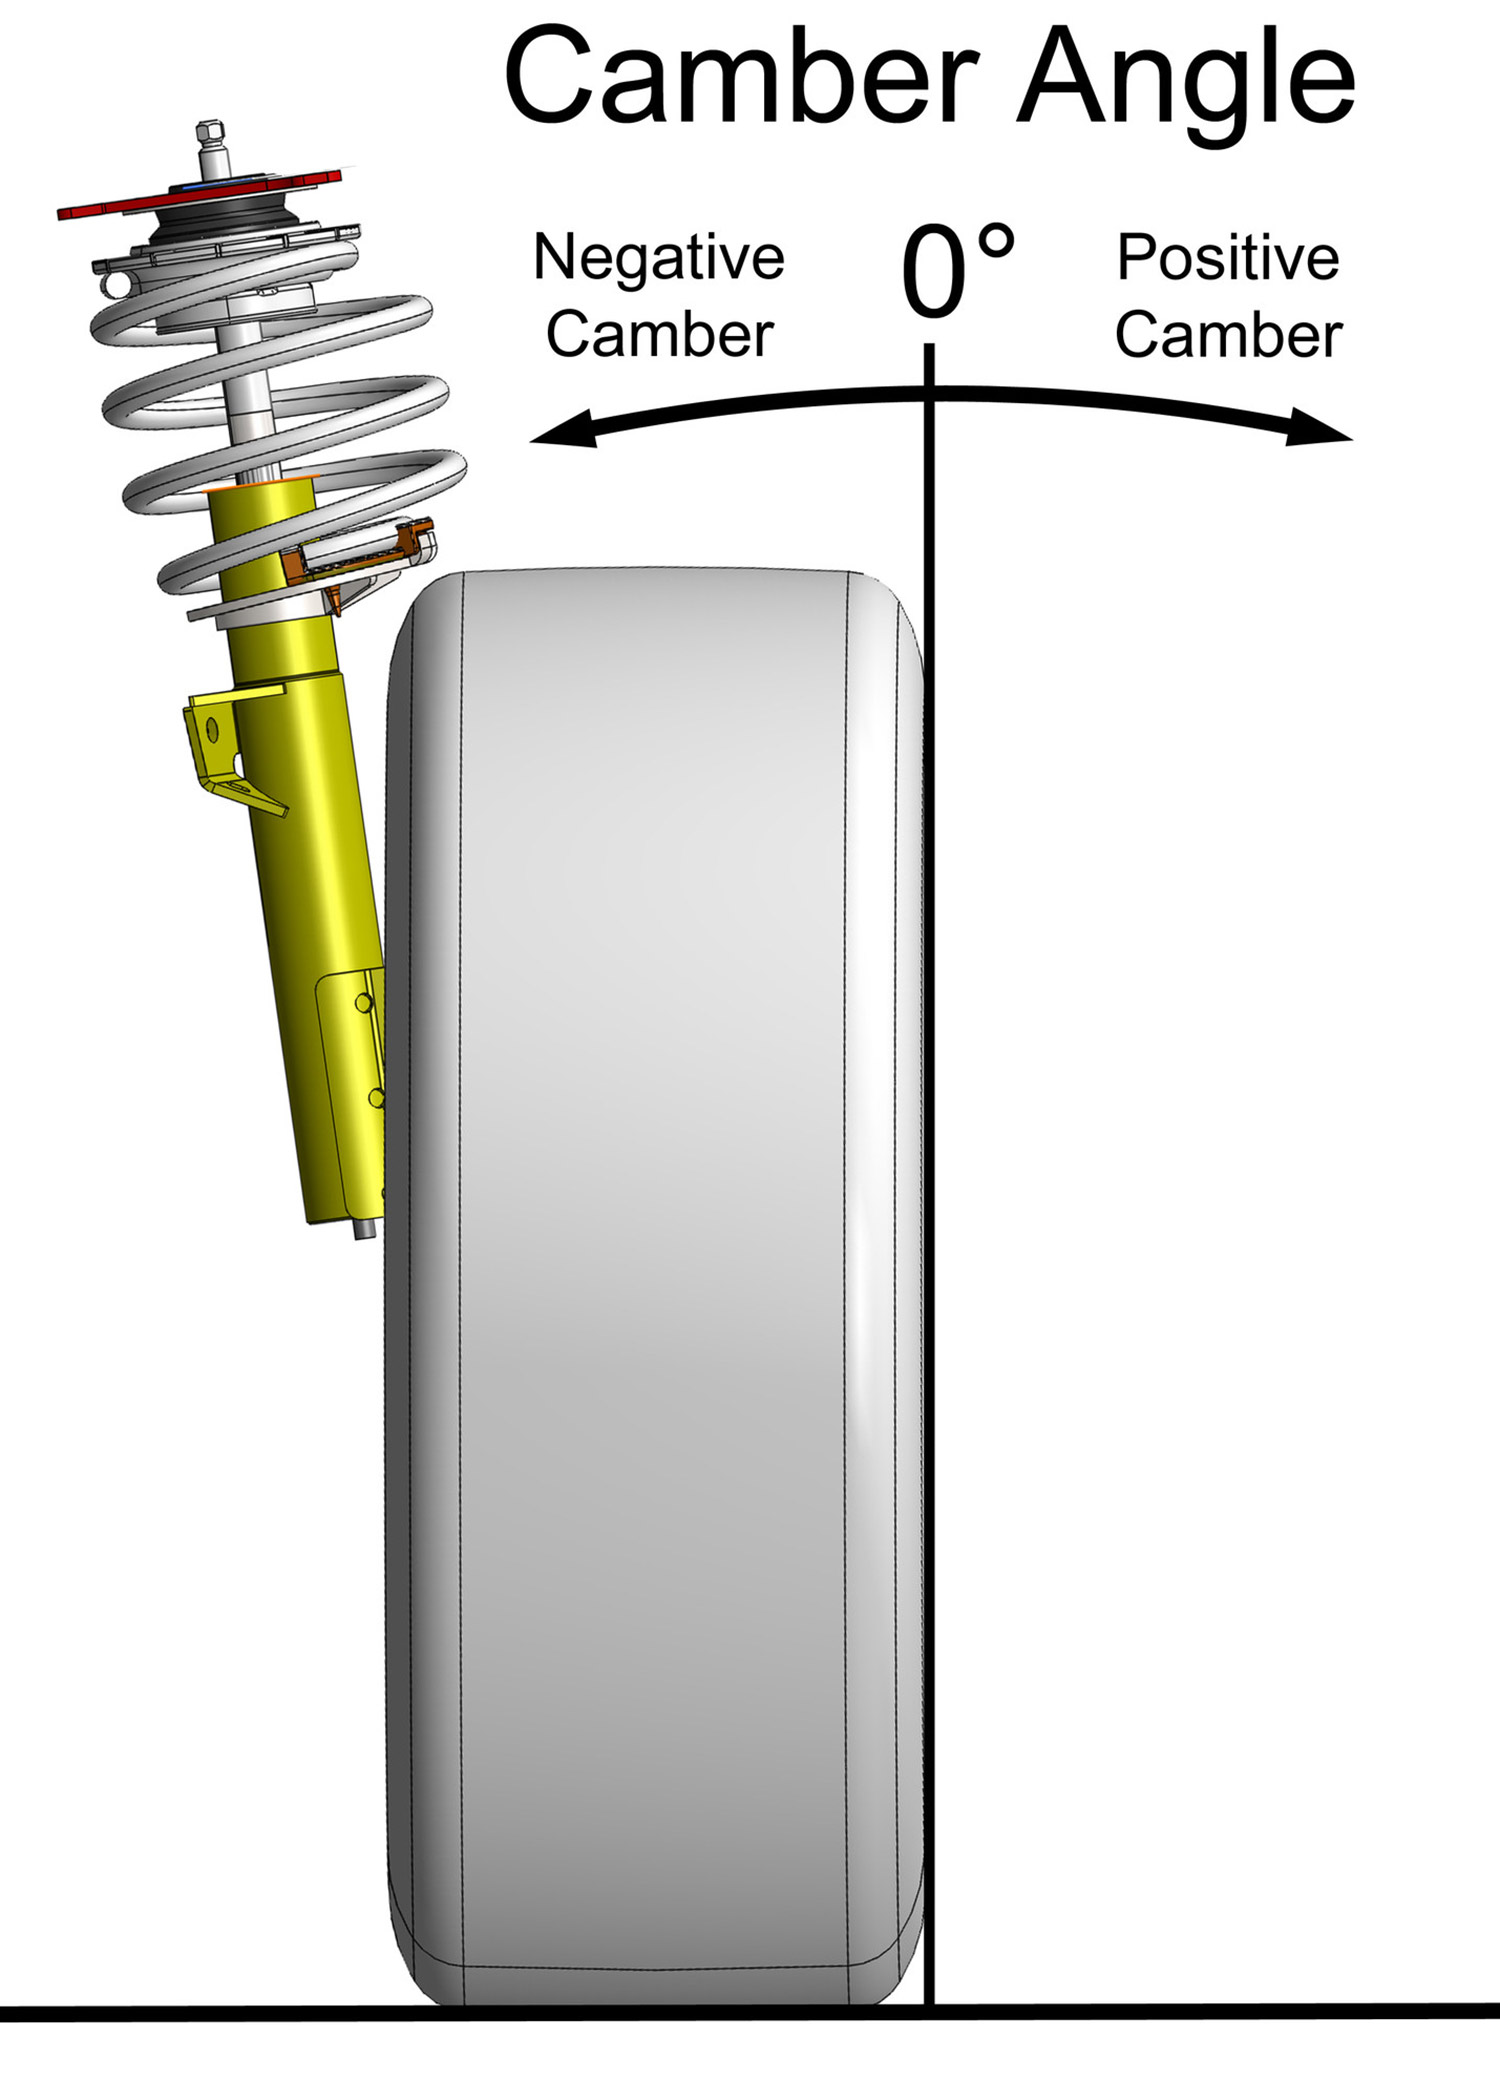 Before diving into the install, let us revisit camber. In short, camber is the side-to-side angle (or tilt) of the wheel (and MacPherson strut on a Mustang) when viewed from the front of the car. The top of the wheel tilted inwards is considered negative camber. When the top of the wheel tilts toward the outside of the car, that is positive camber.